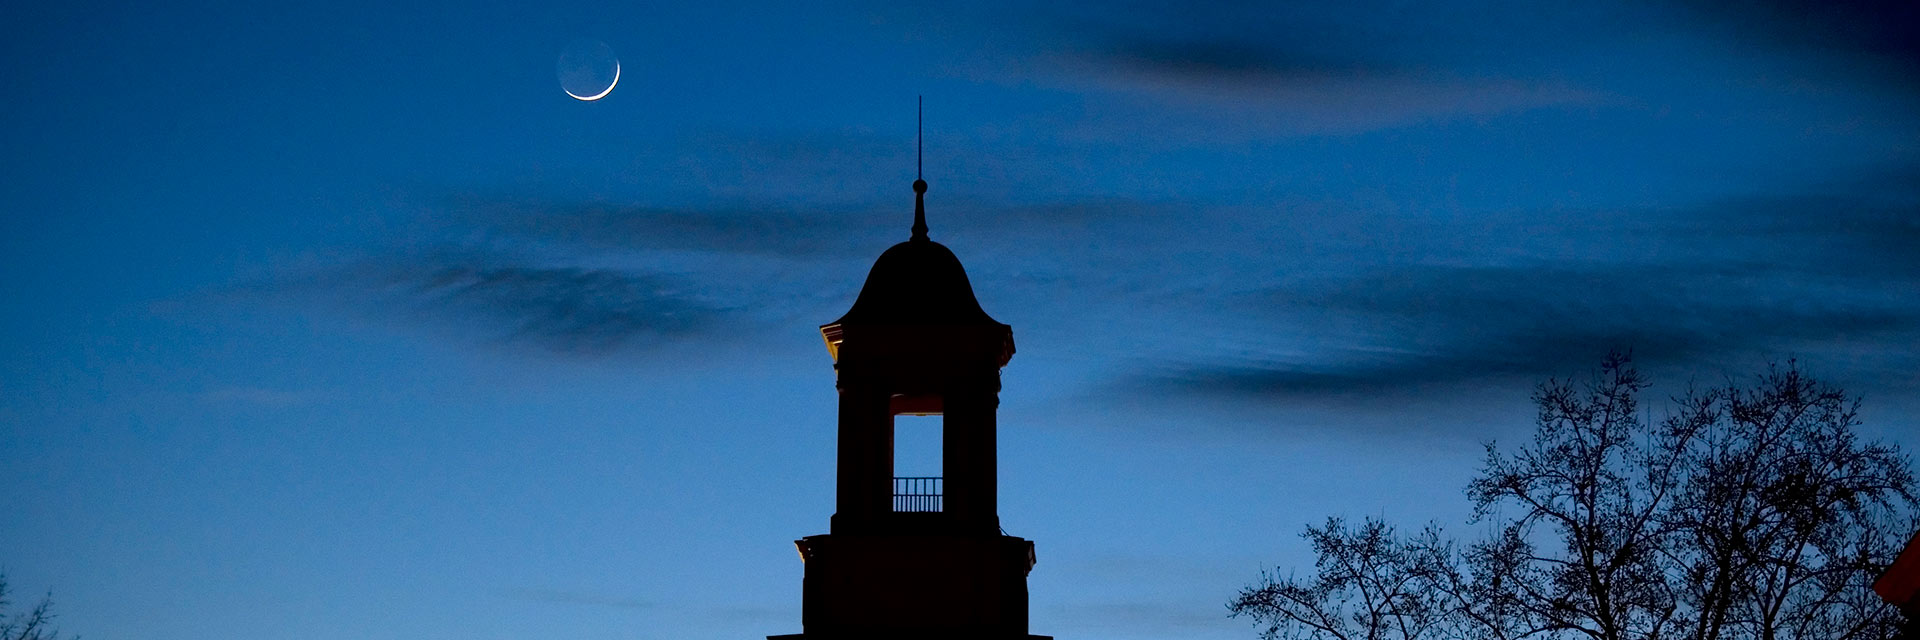 cupola at dusk with sliver moon header